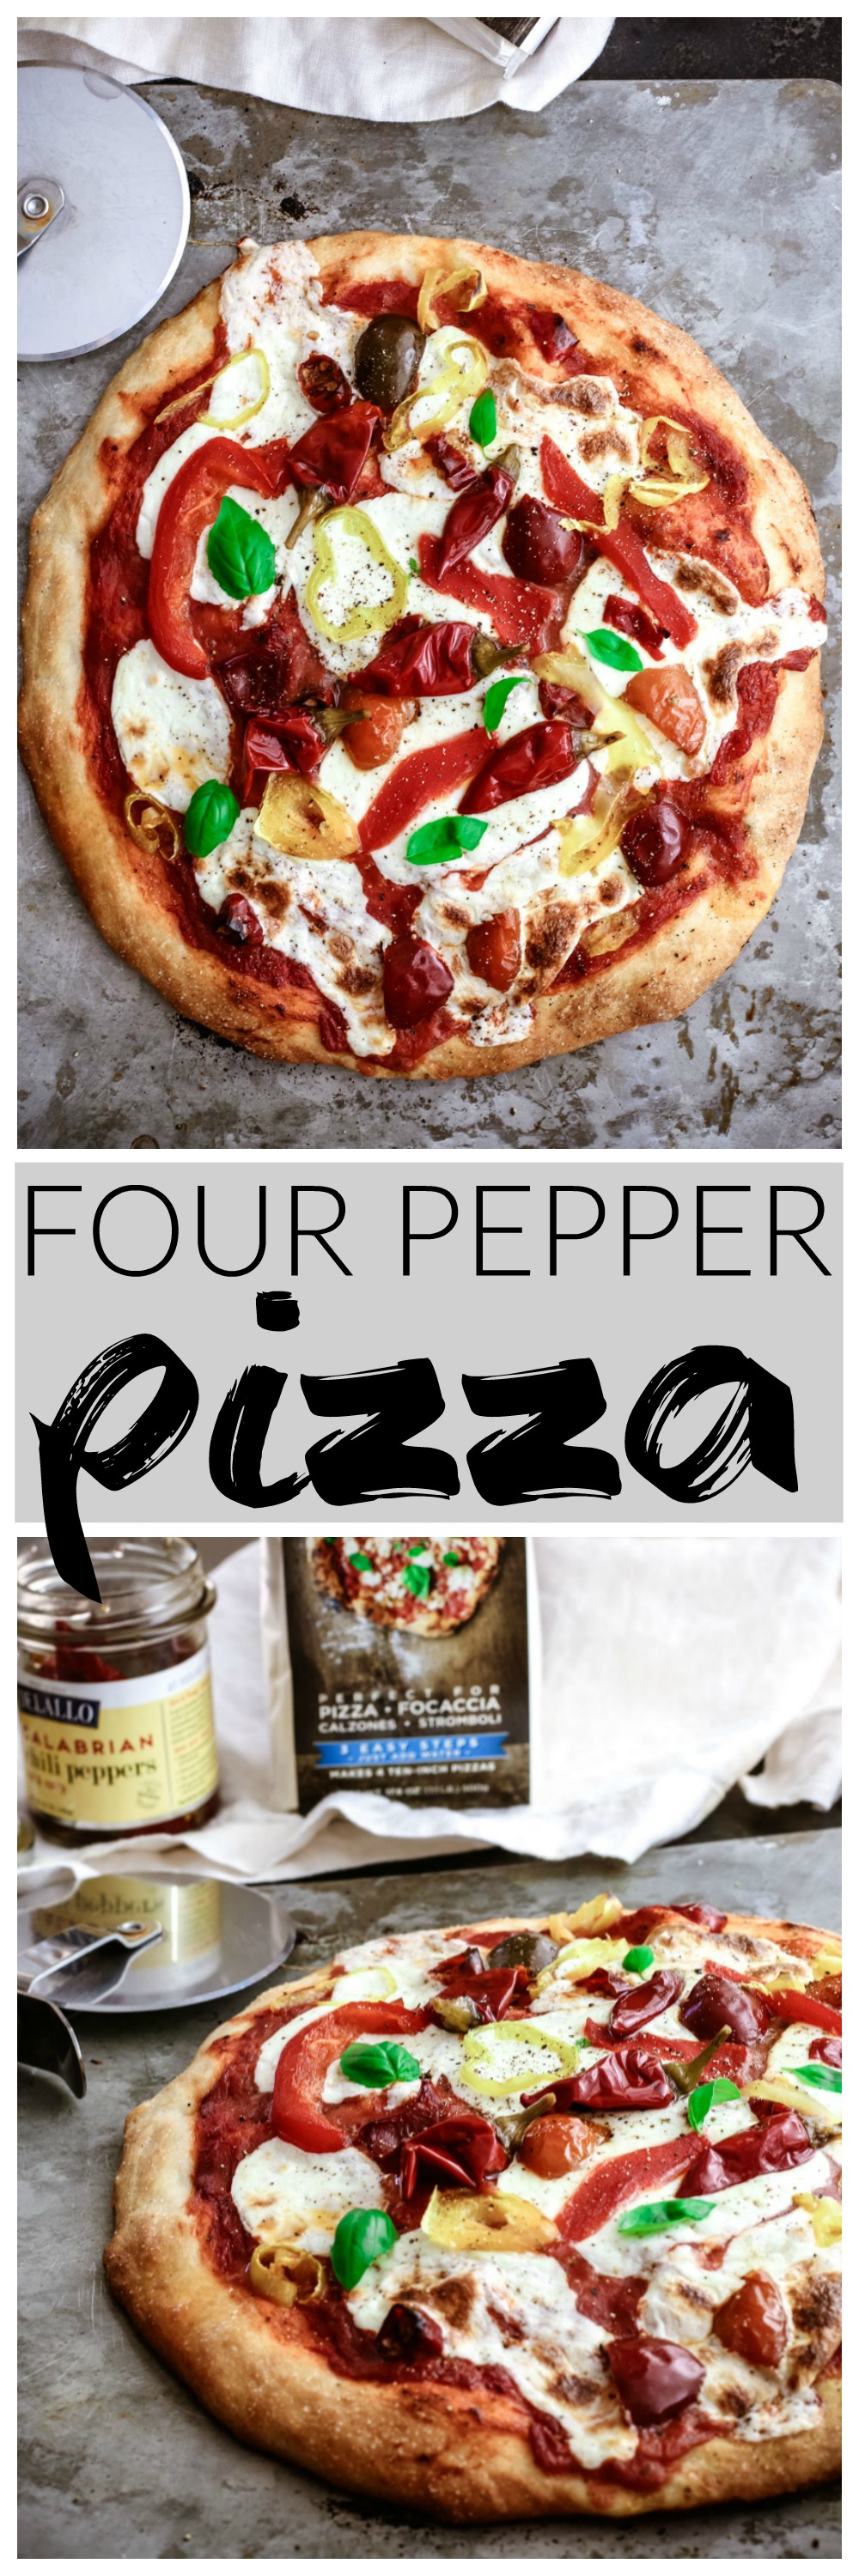 Four Pepper Pizza | Killing Thyme — This homemade pizza is the perfect way to spice things up for a date night in! A mélange of sweet, spicy, and briny peppers are strewn over fresh mozzarella for rustic pizza perfection.